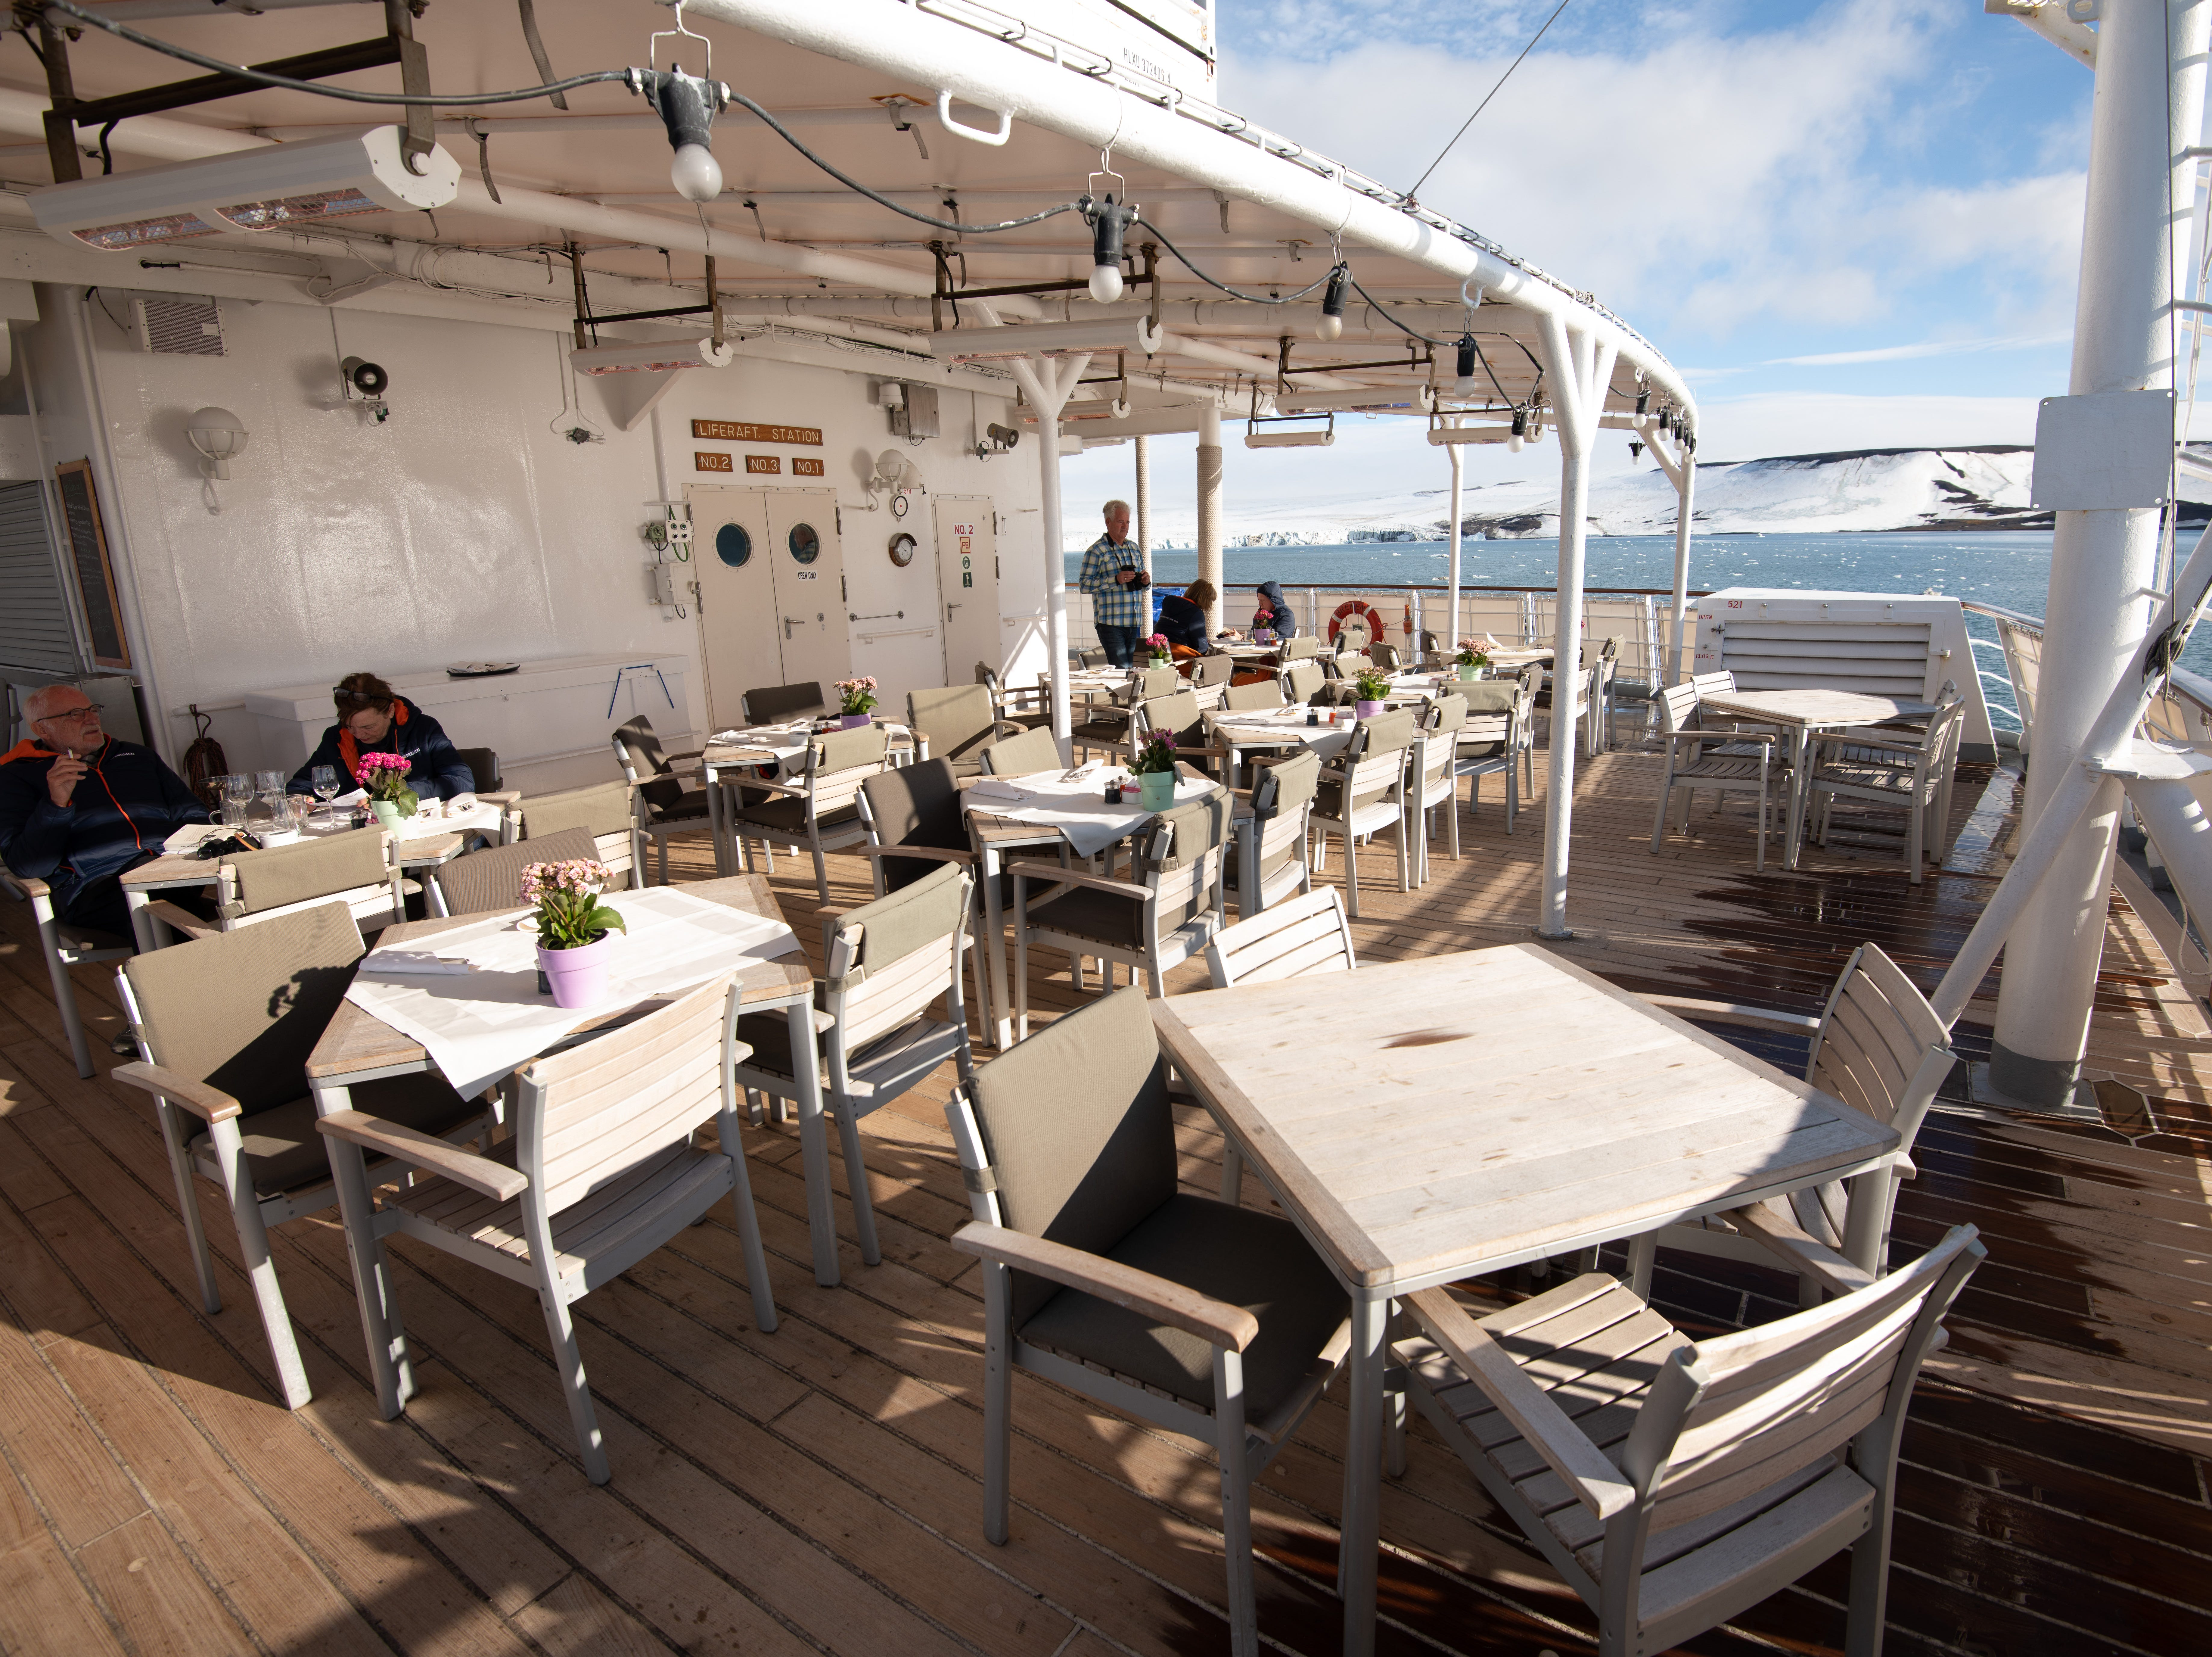 At the back of Bremen on Deck 5, just behind the Bremen Club lounge, is an outdoor area with seating called the Lido Deck.